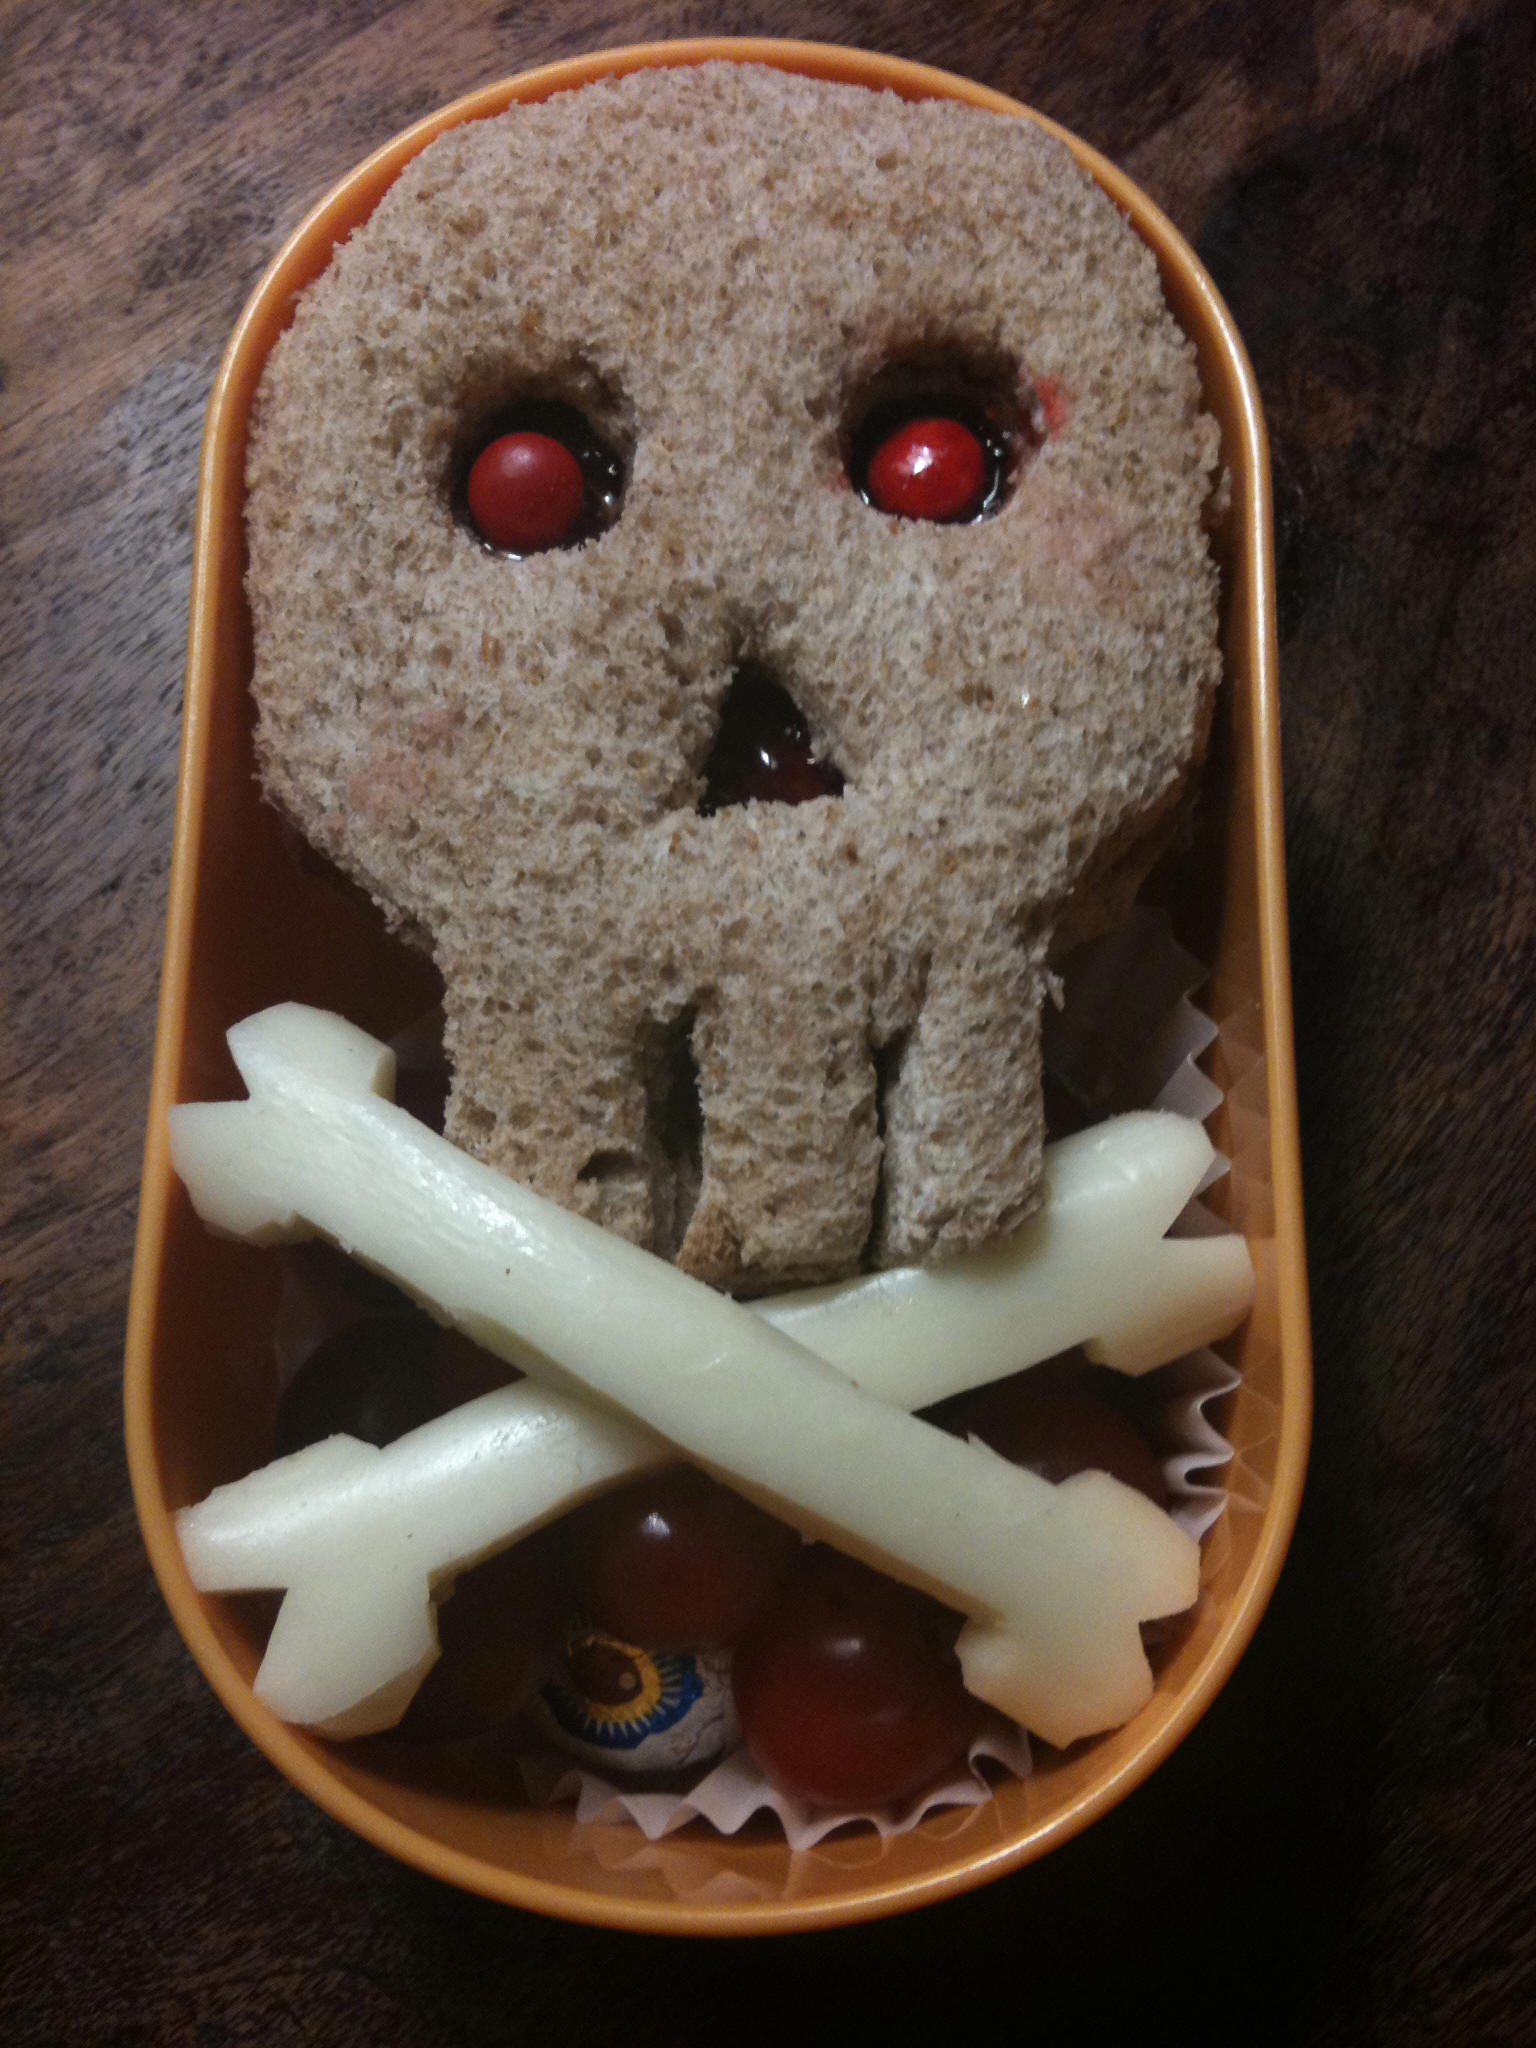 Halloween Bento Box #2 by lello